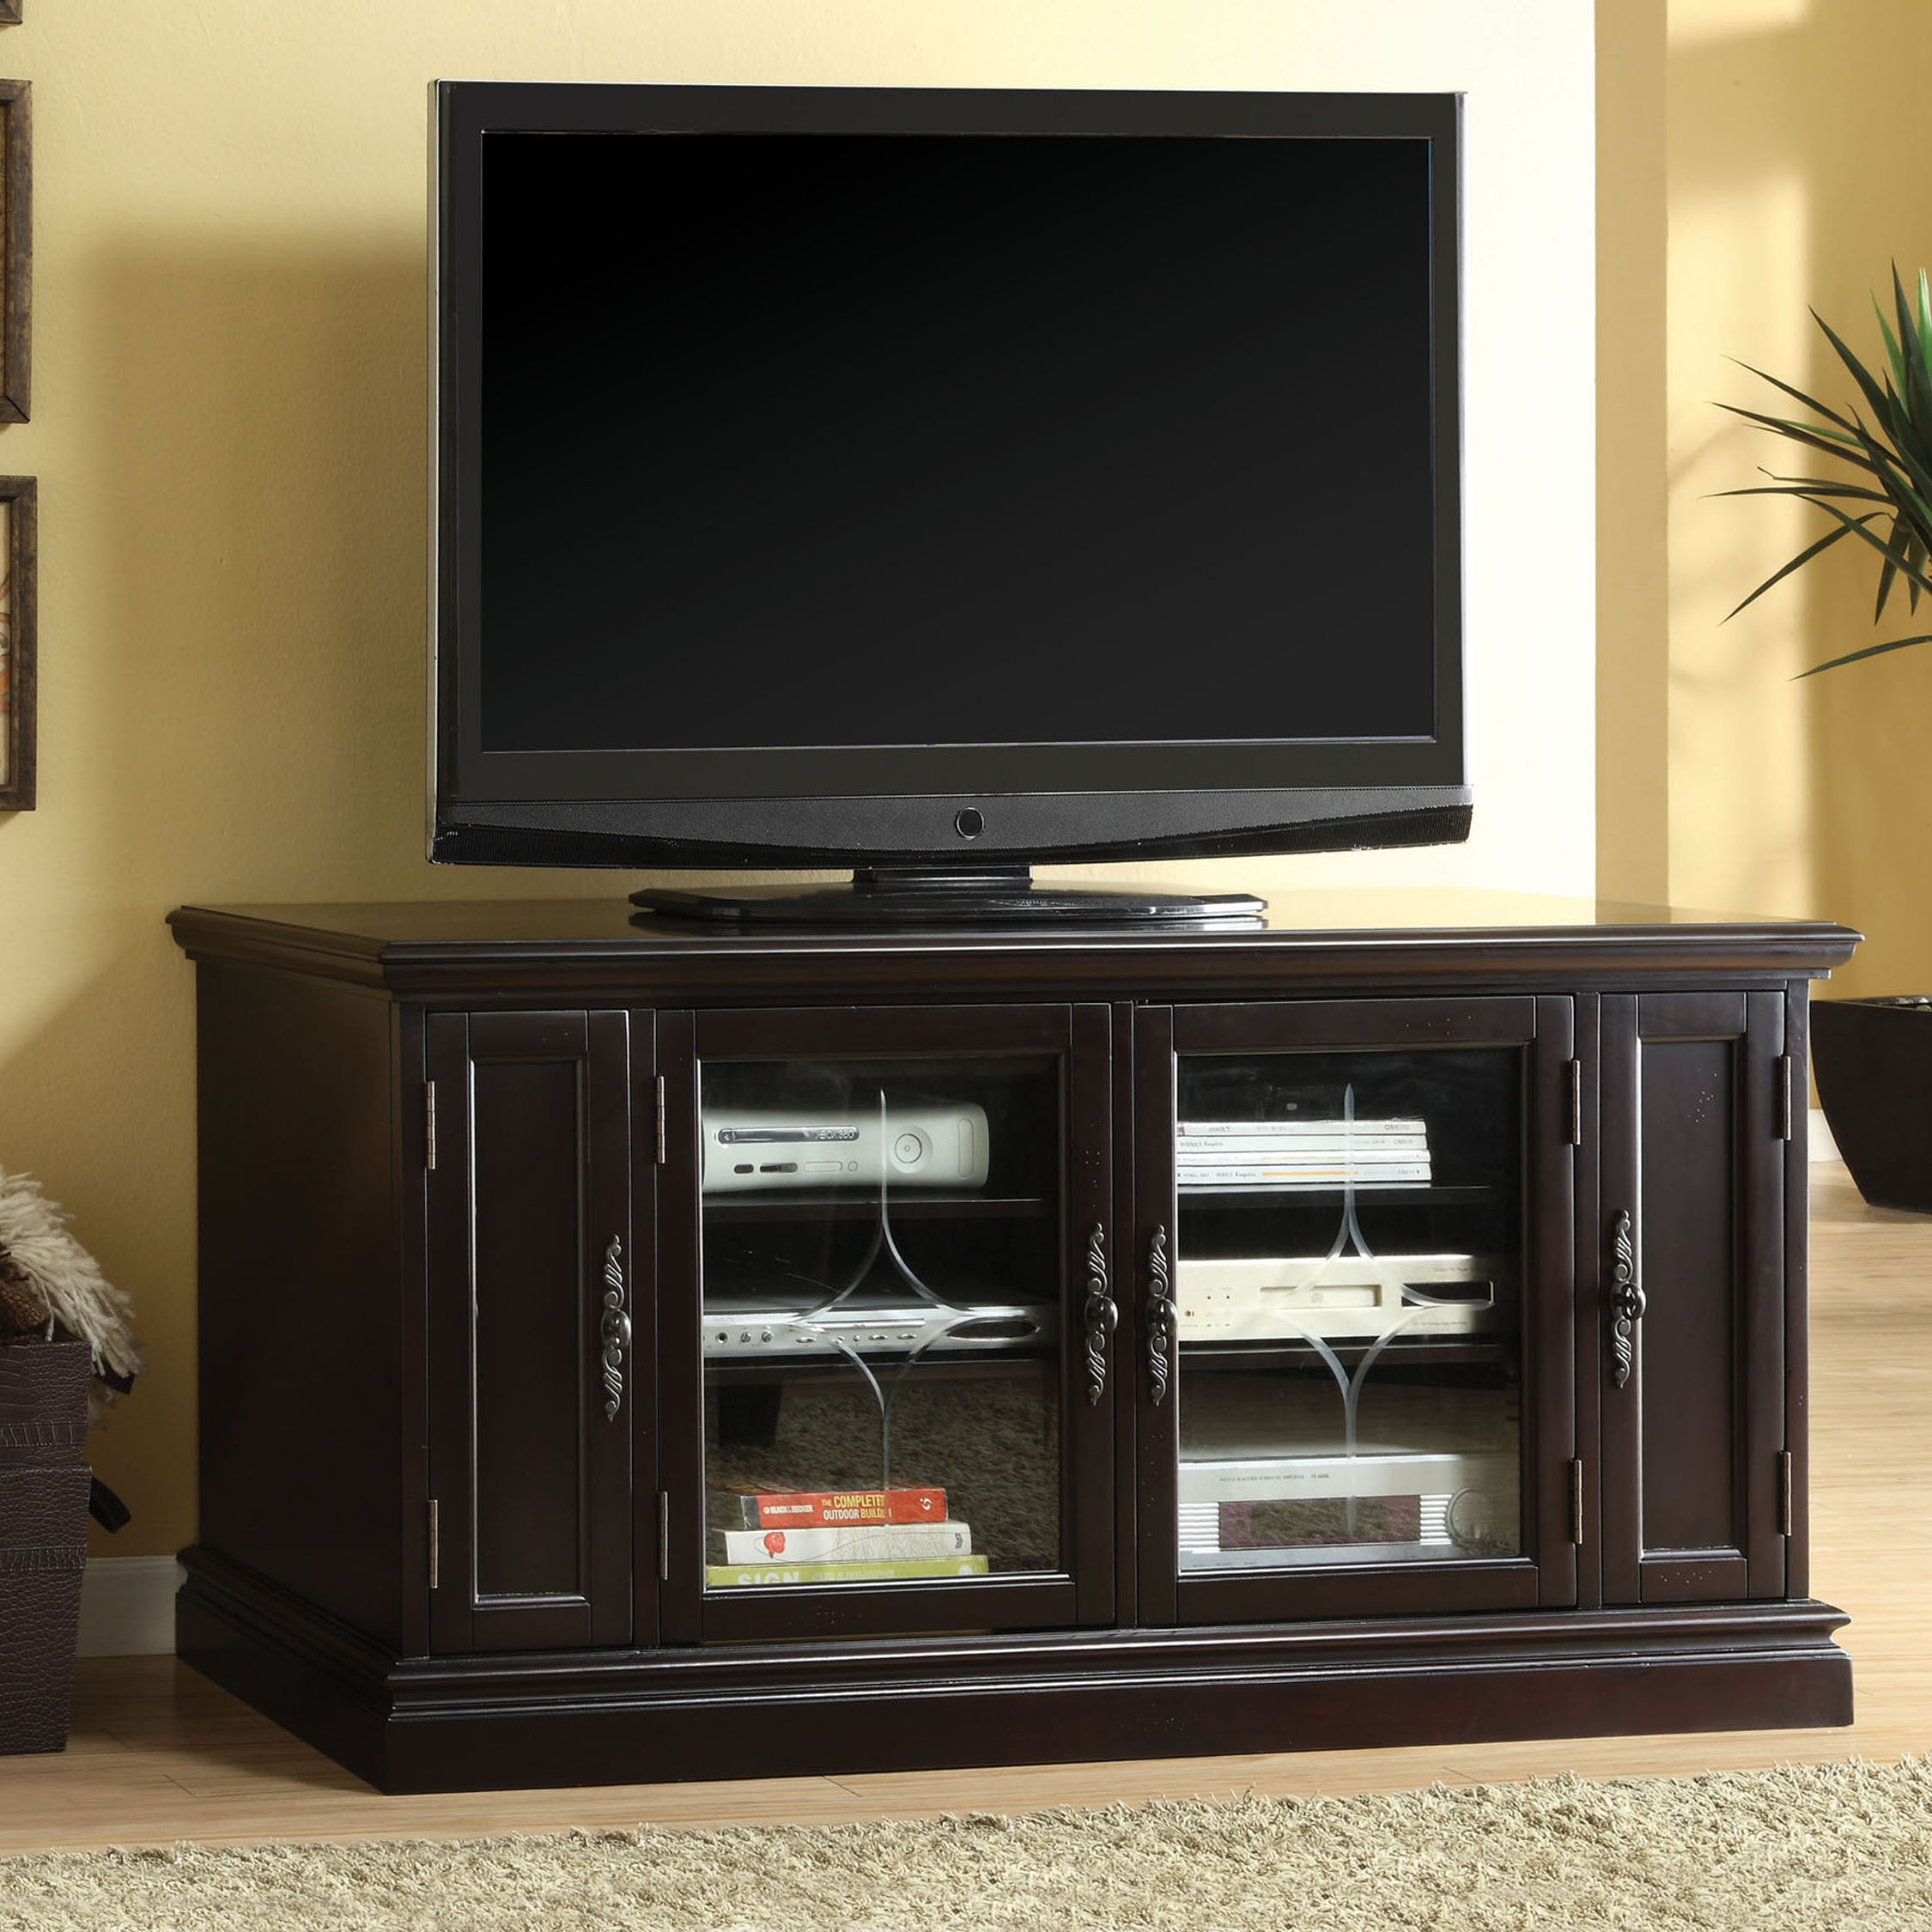 Furniture of America Torrington Fully Assembled Entertainment Console